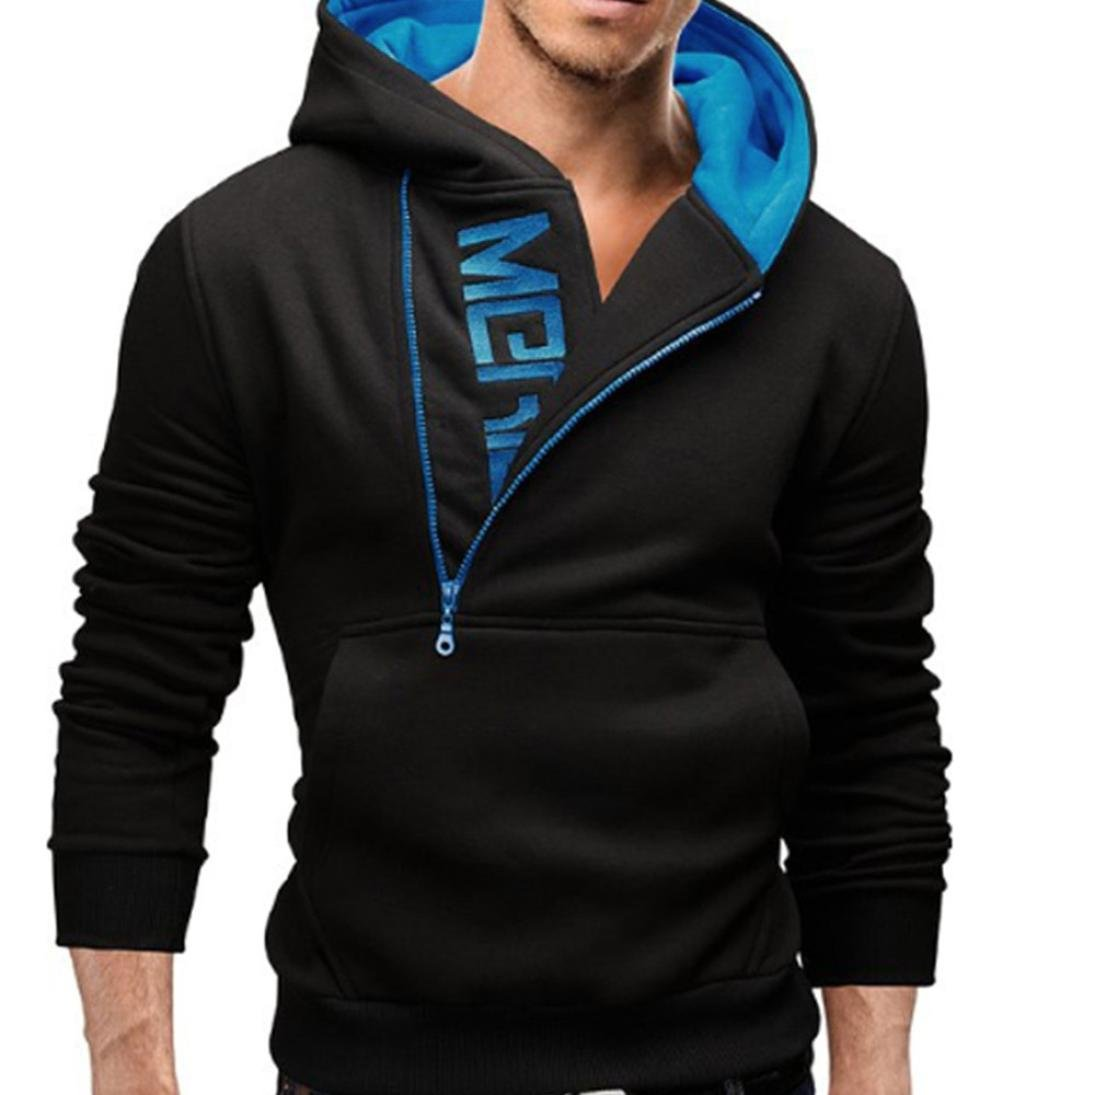 Sinzelimin Mens Motorcycle Long Sleeve Hoodie Outdoor Hooded Sweatshirt Tops Zip up Jacket Coat Outwear